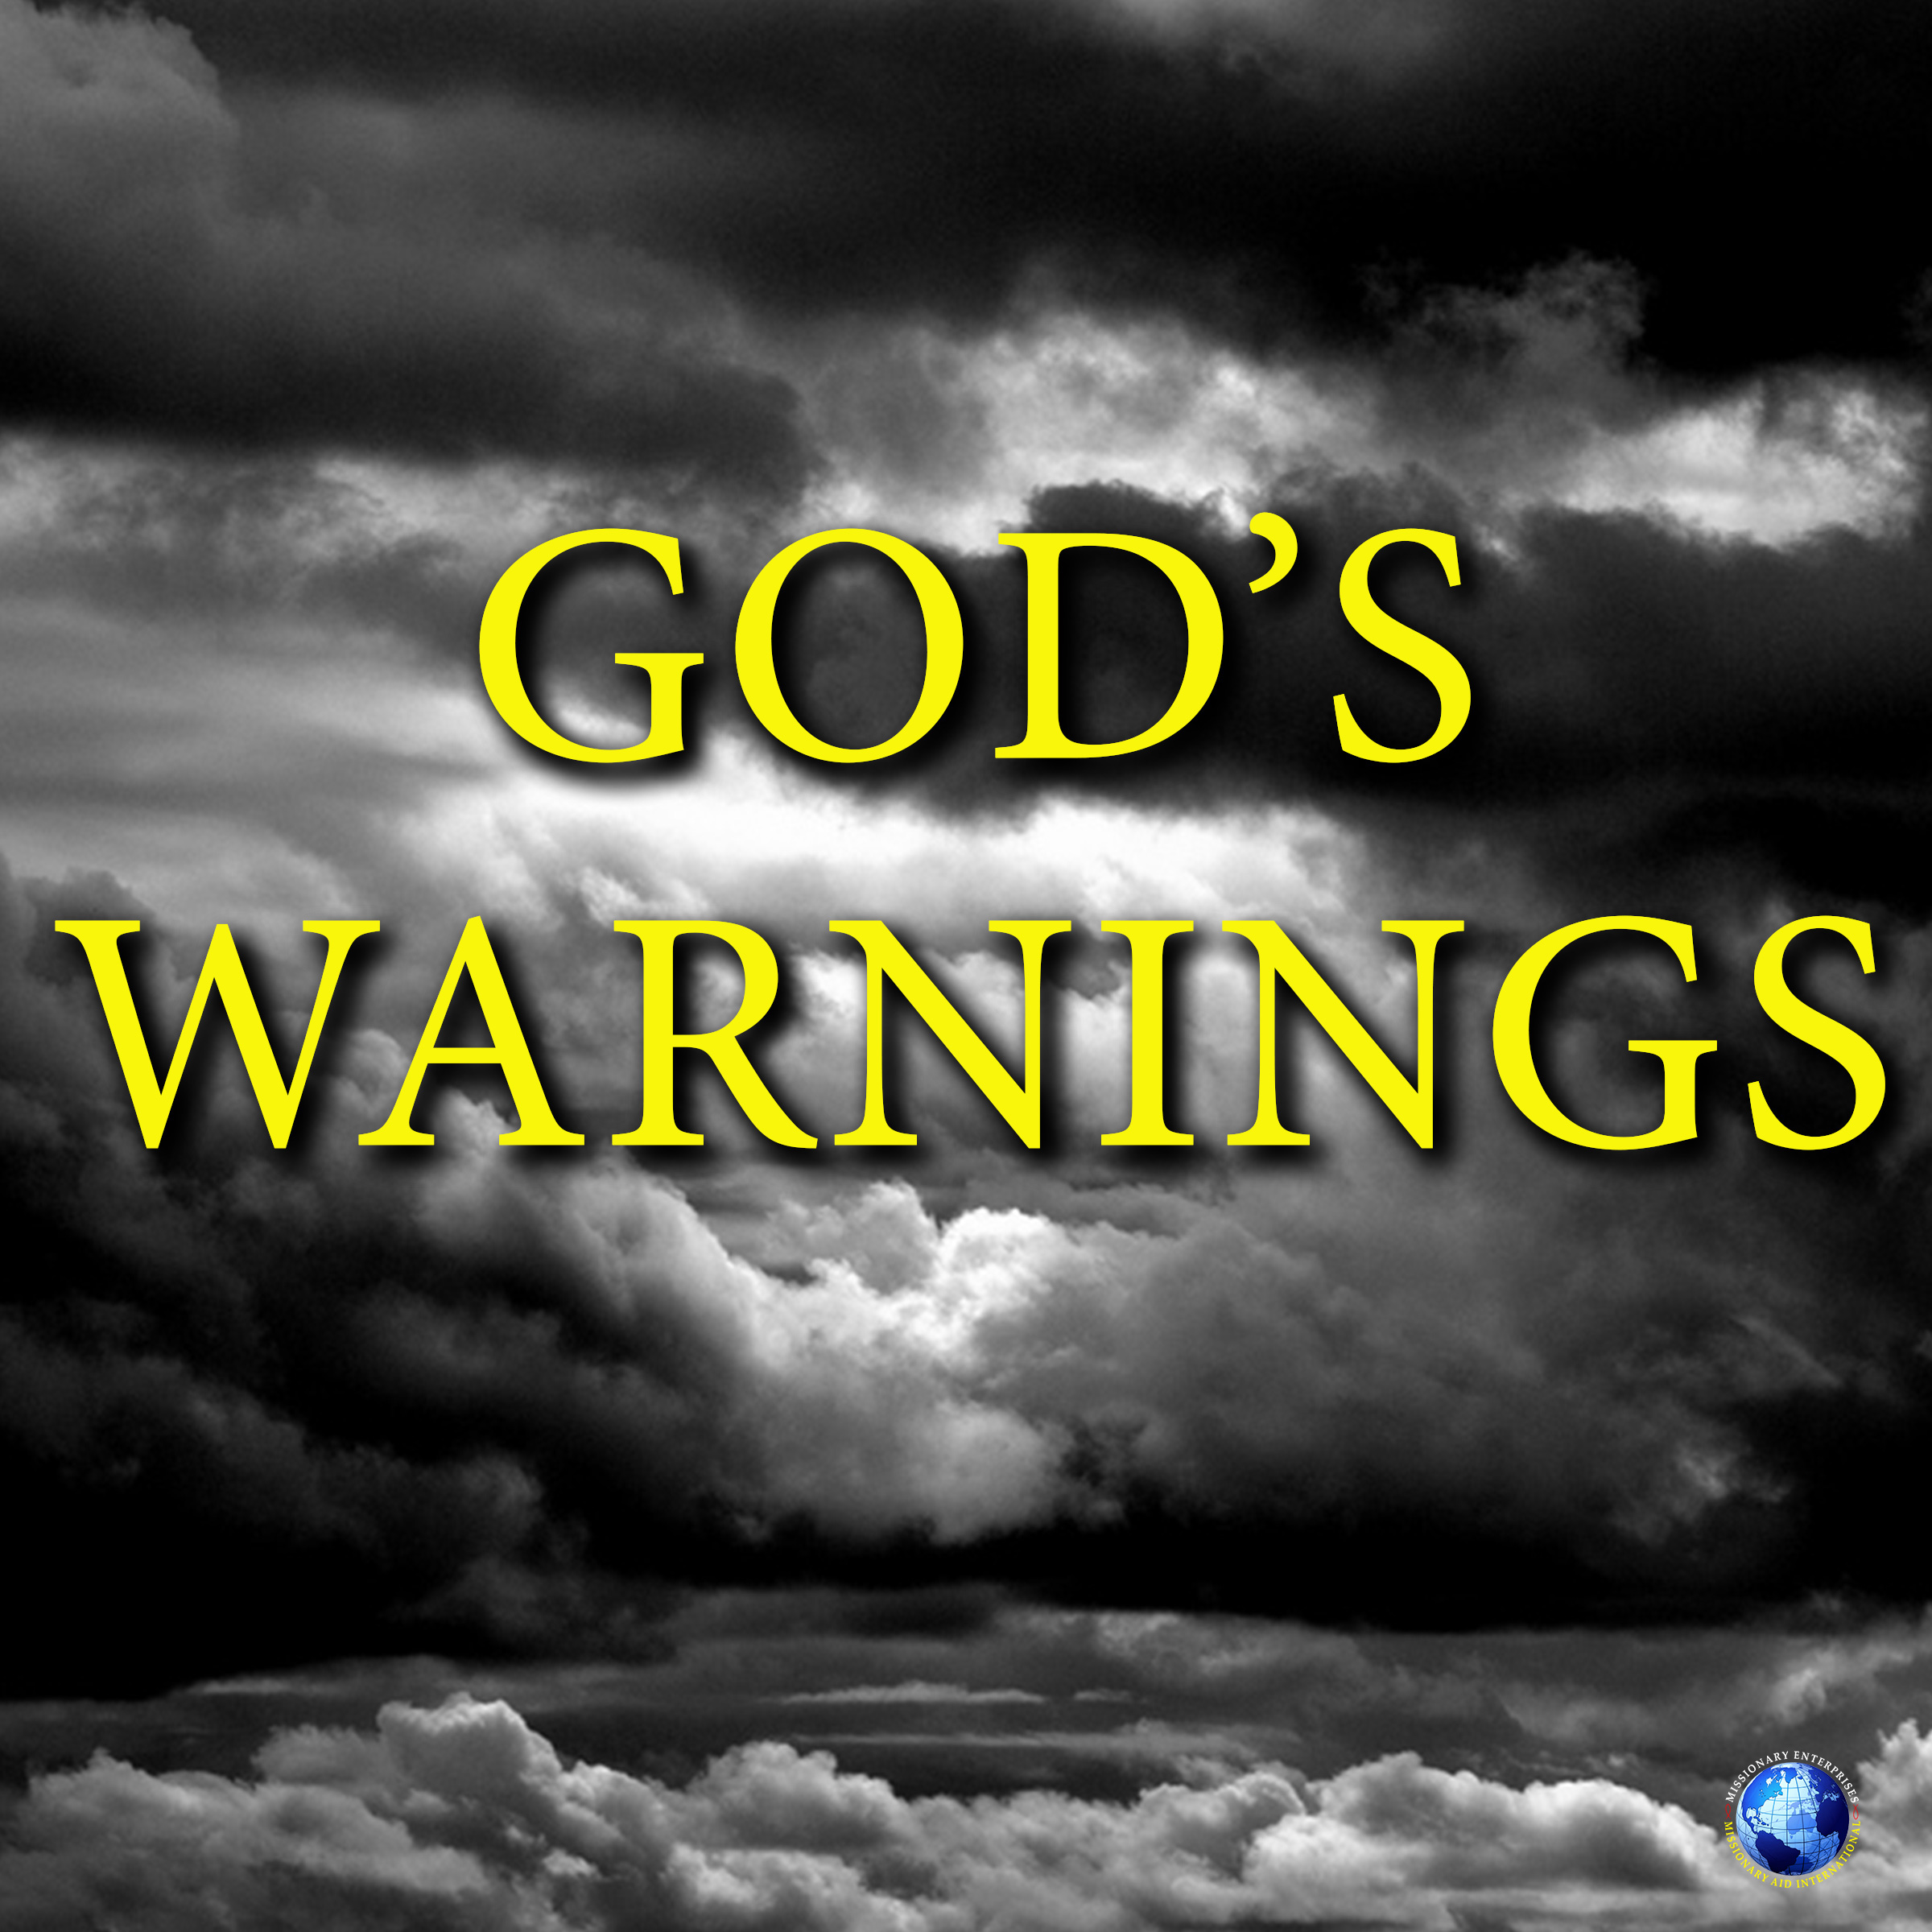 God's Warnings